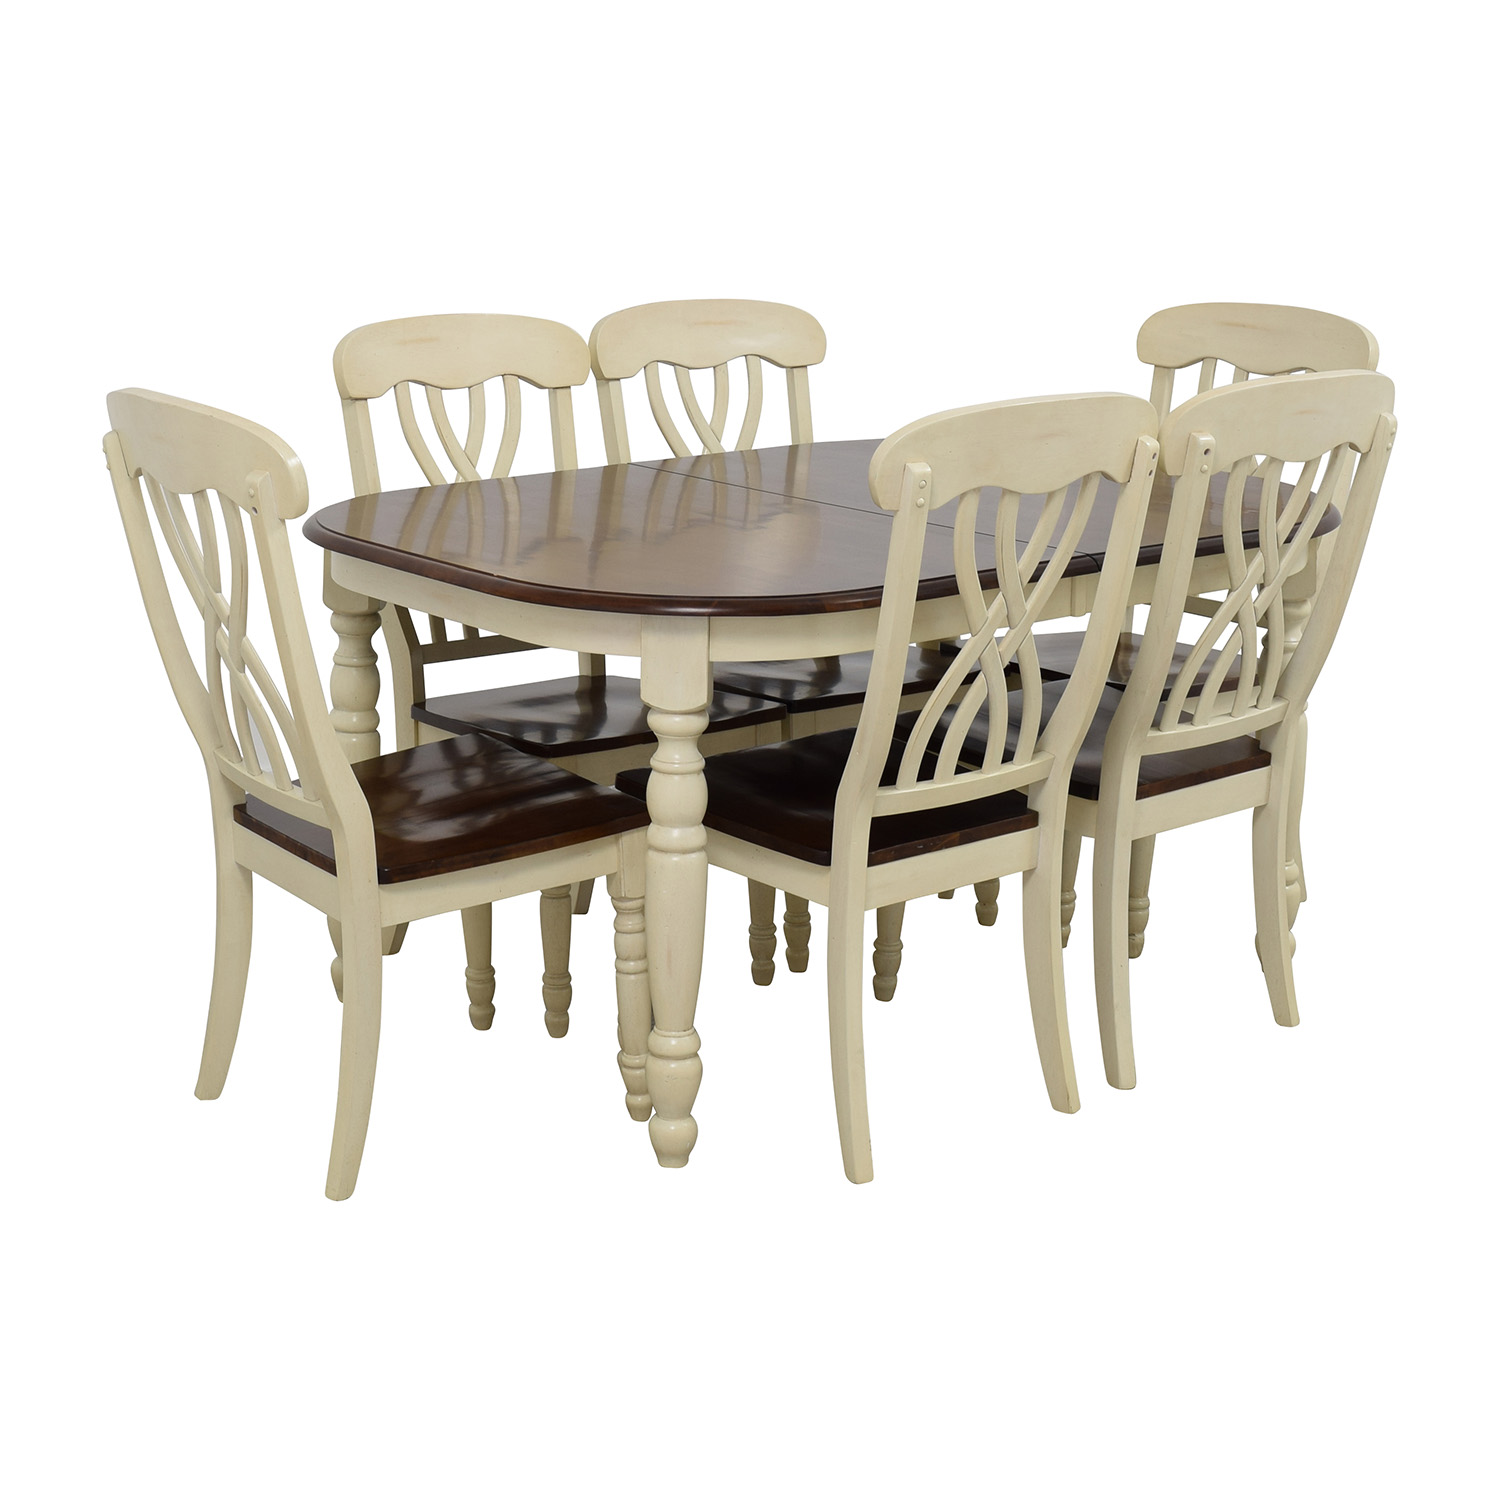 50 off extendable wood dining table with chairs tables. Black Bedroom Furniture Sets. Home Design Ideas